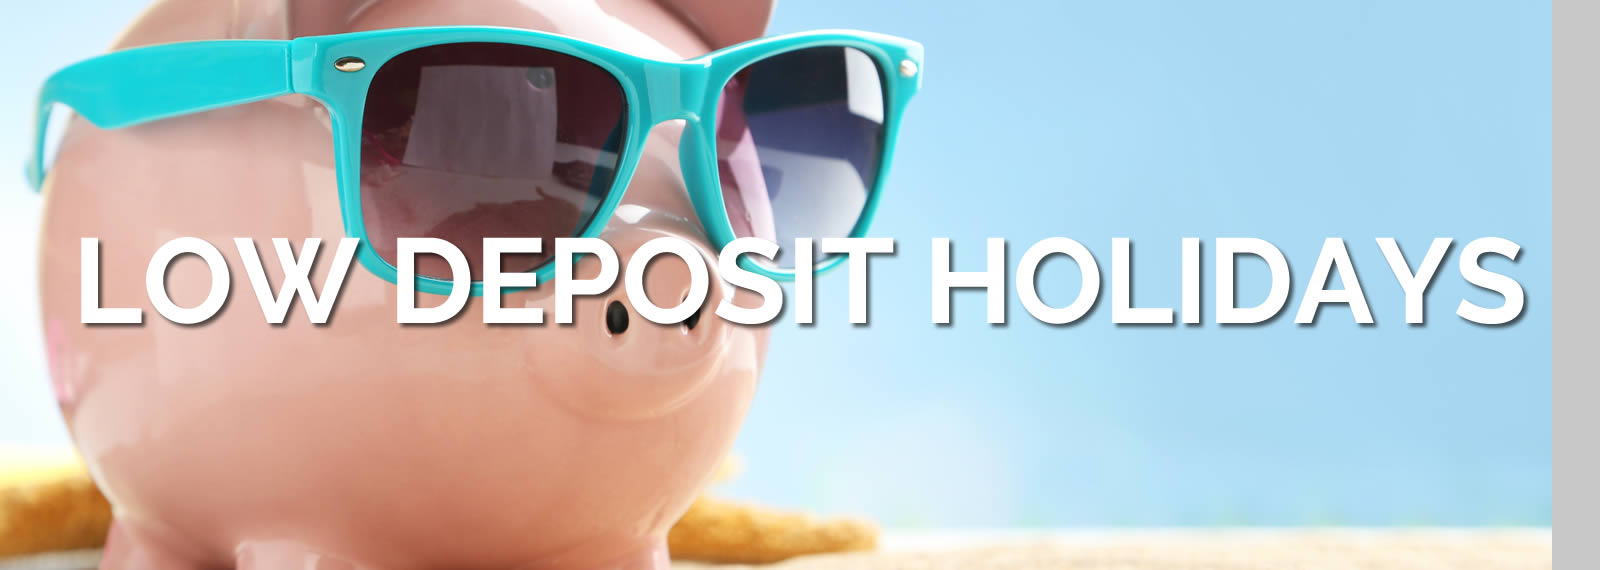 Low Deposit Holidays